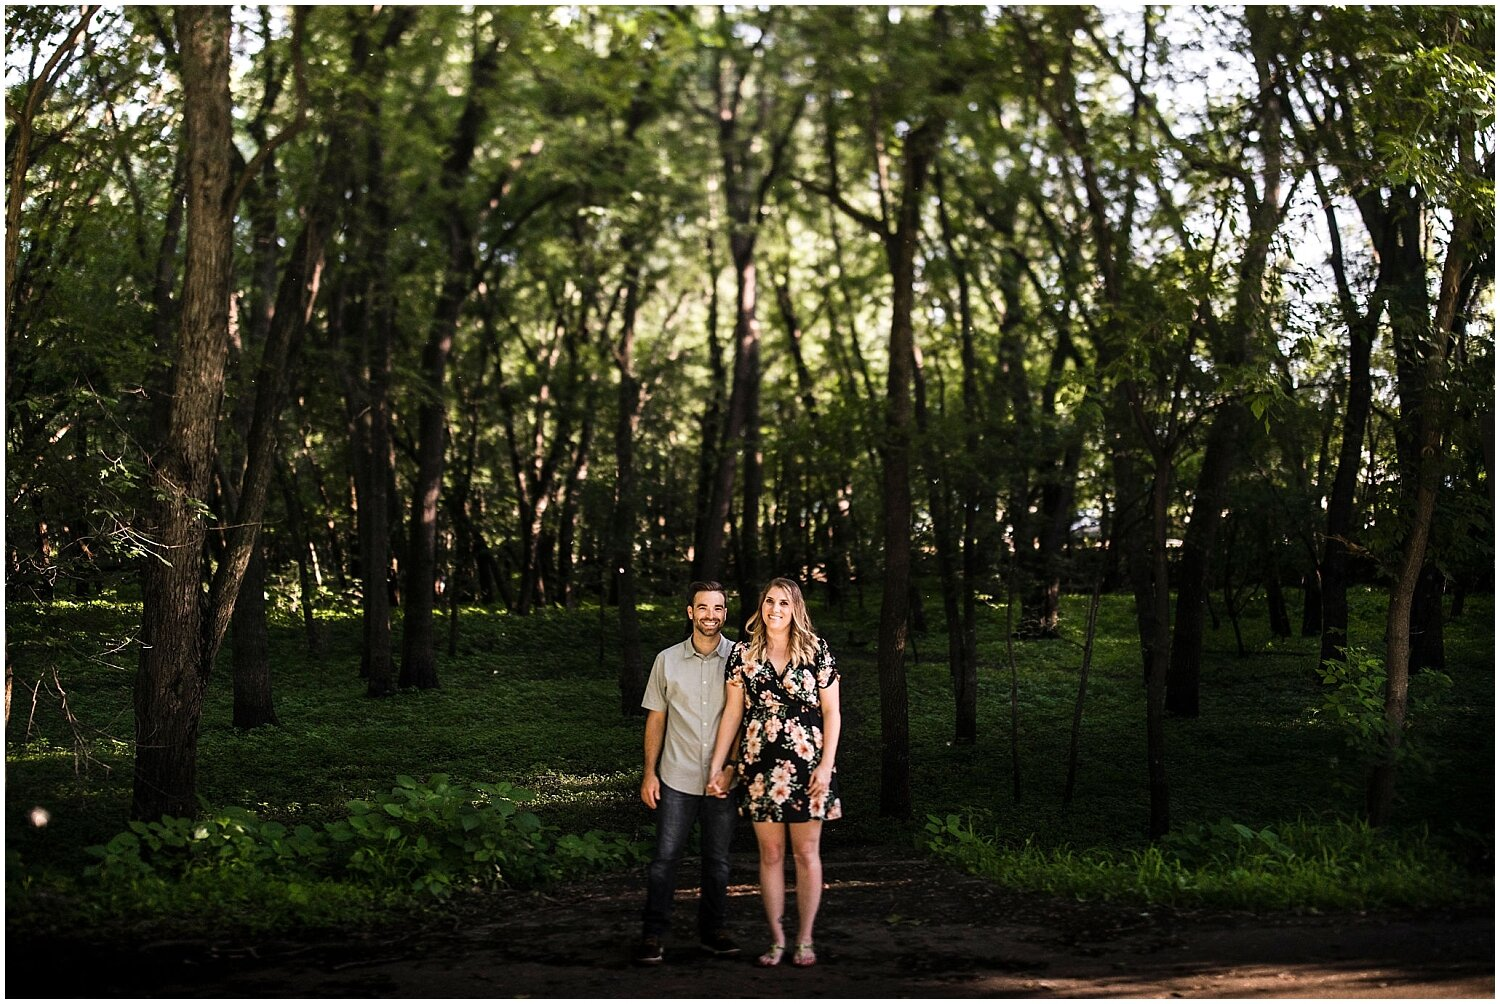 MPLS engagement photo session